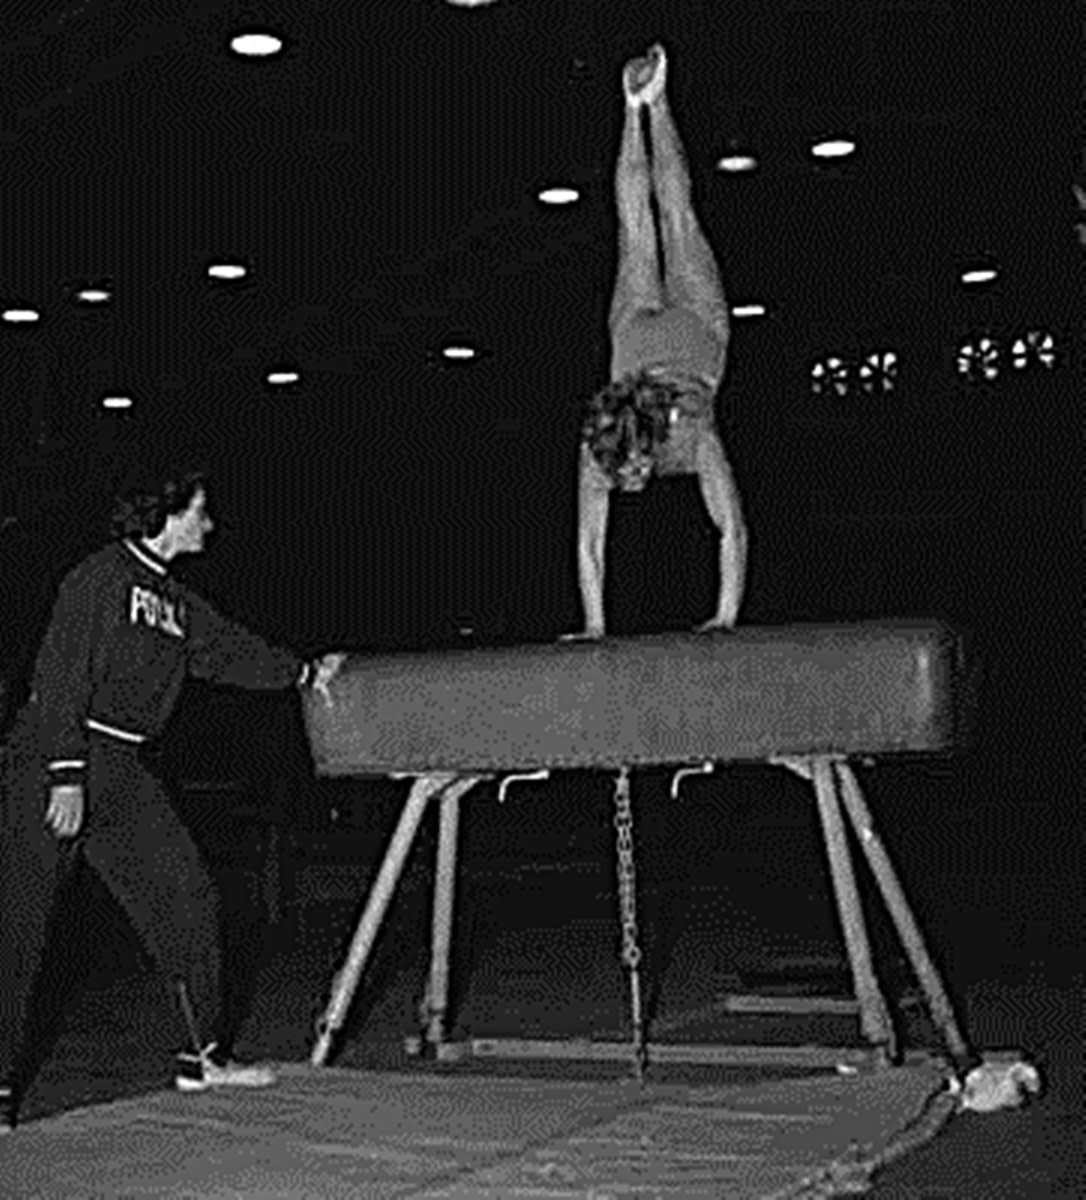 Some of the girls were able to effortlessly fly over the vaulting horse, performing a flip on top. To me, it was terrifying!